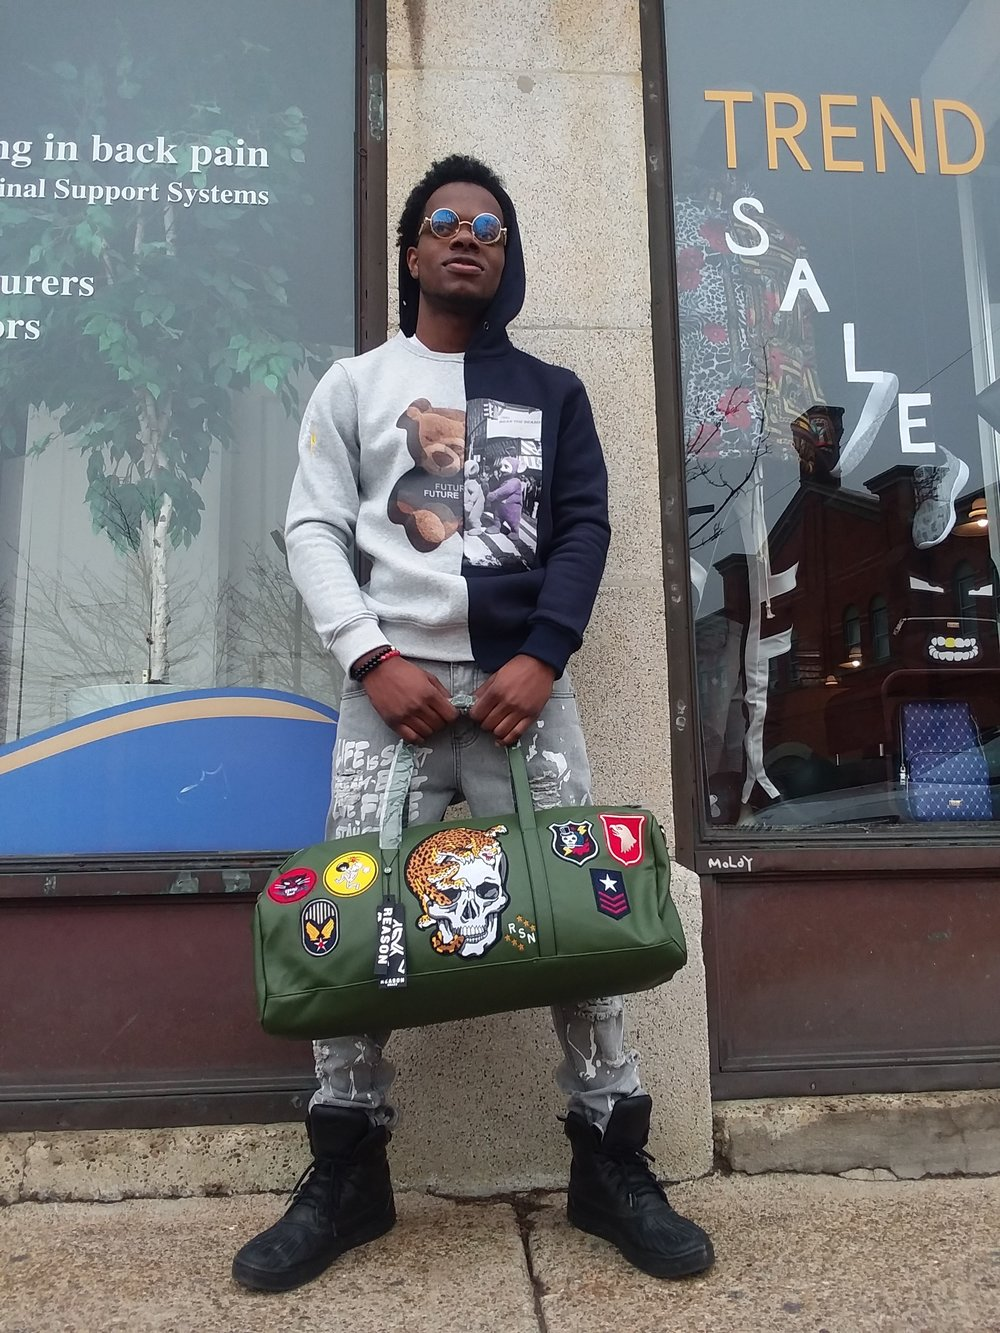 Half and Half Bear Hoodie by Bear the Beams  Ice Graffiti Distressed Denim by Seize&Desist  Travel Bag by Reason NYC  Model: Jeremiah Austin   Styled and Photo by Giovanni Centurione